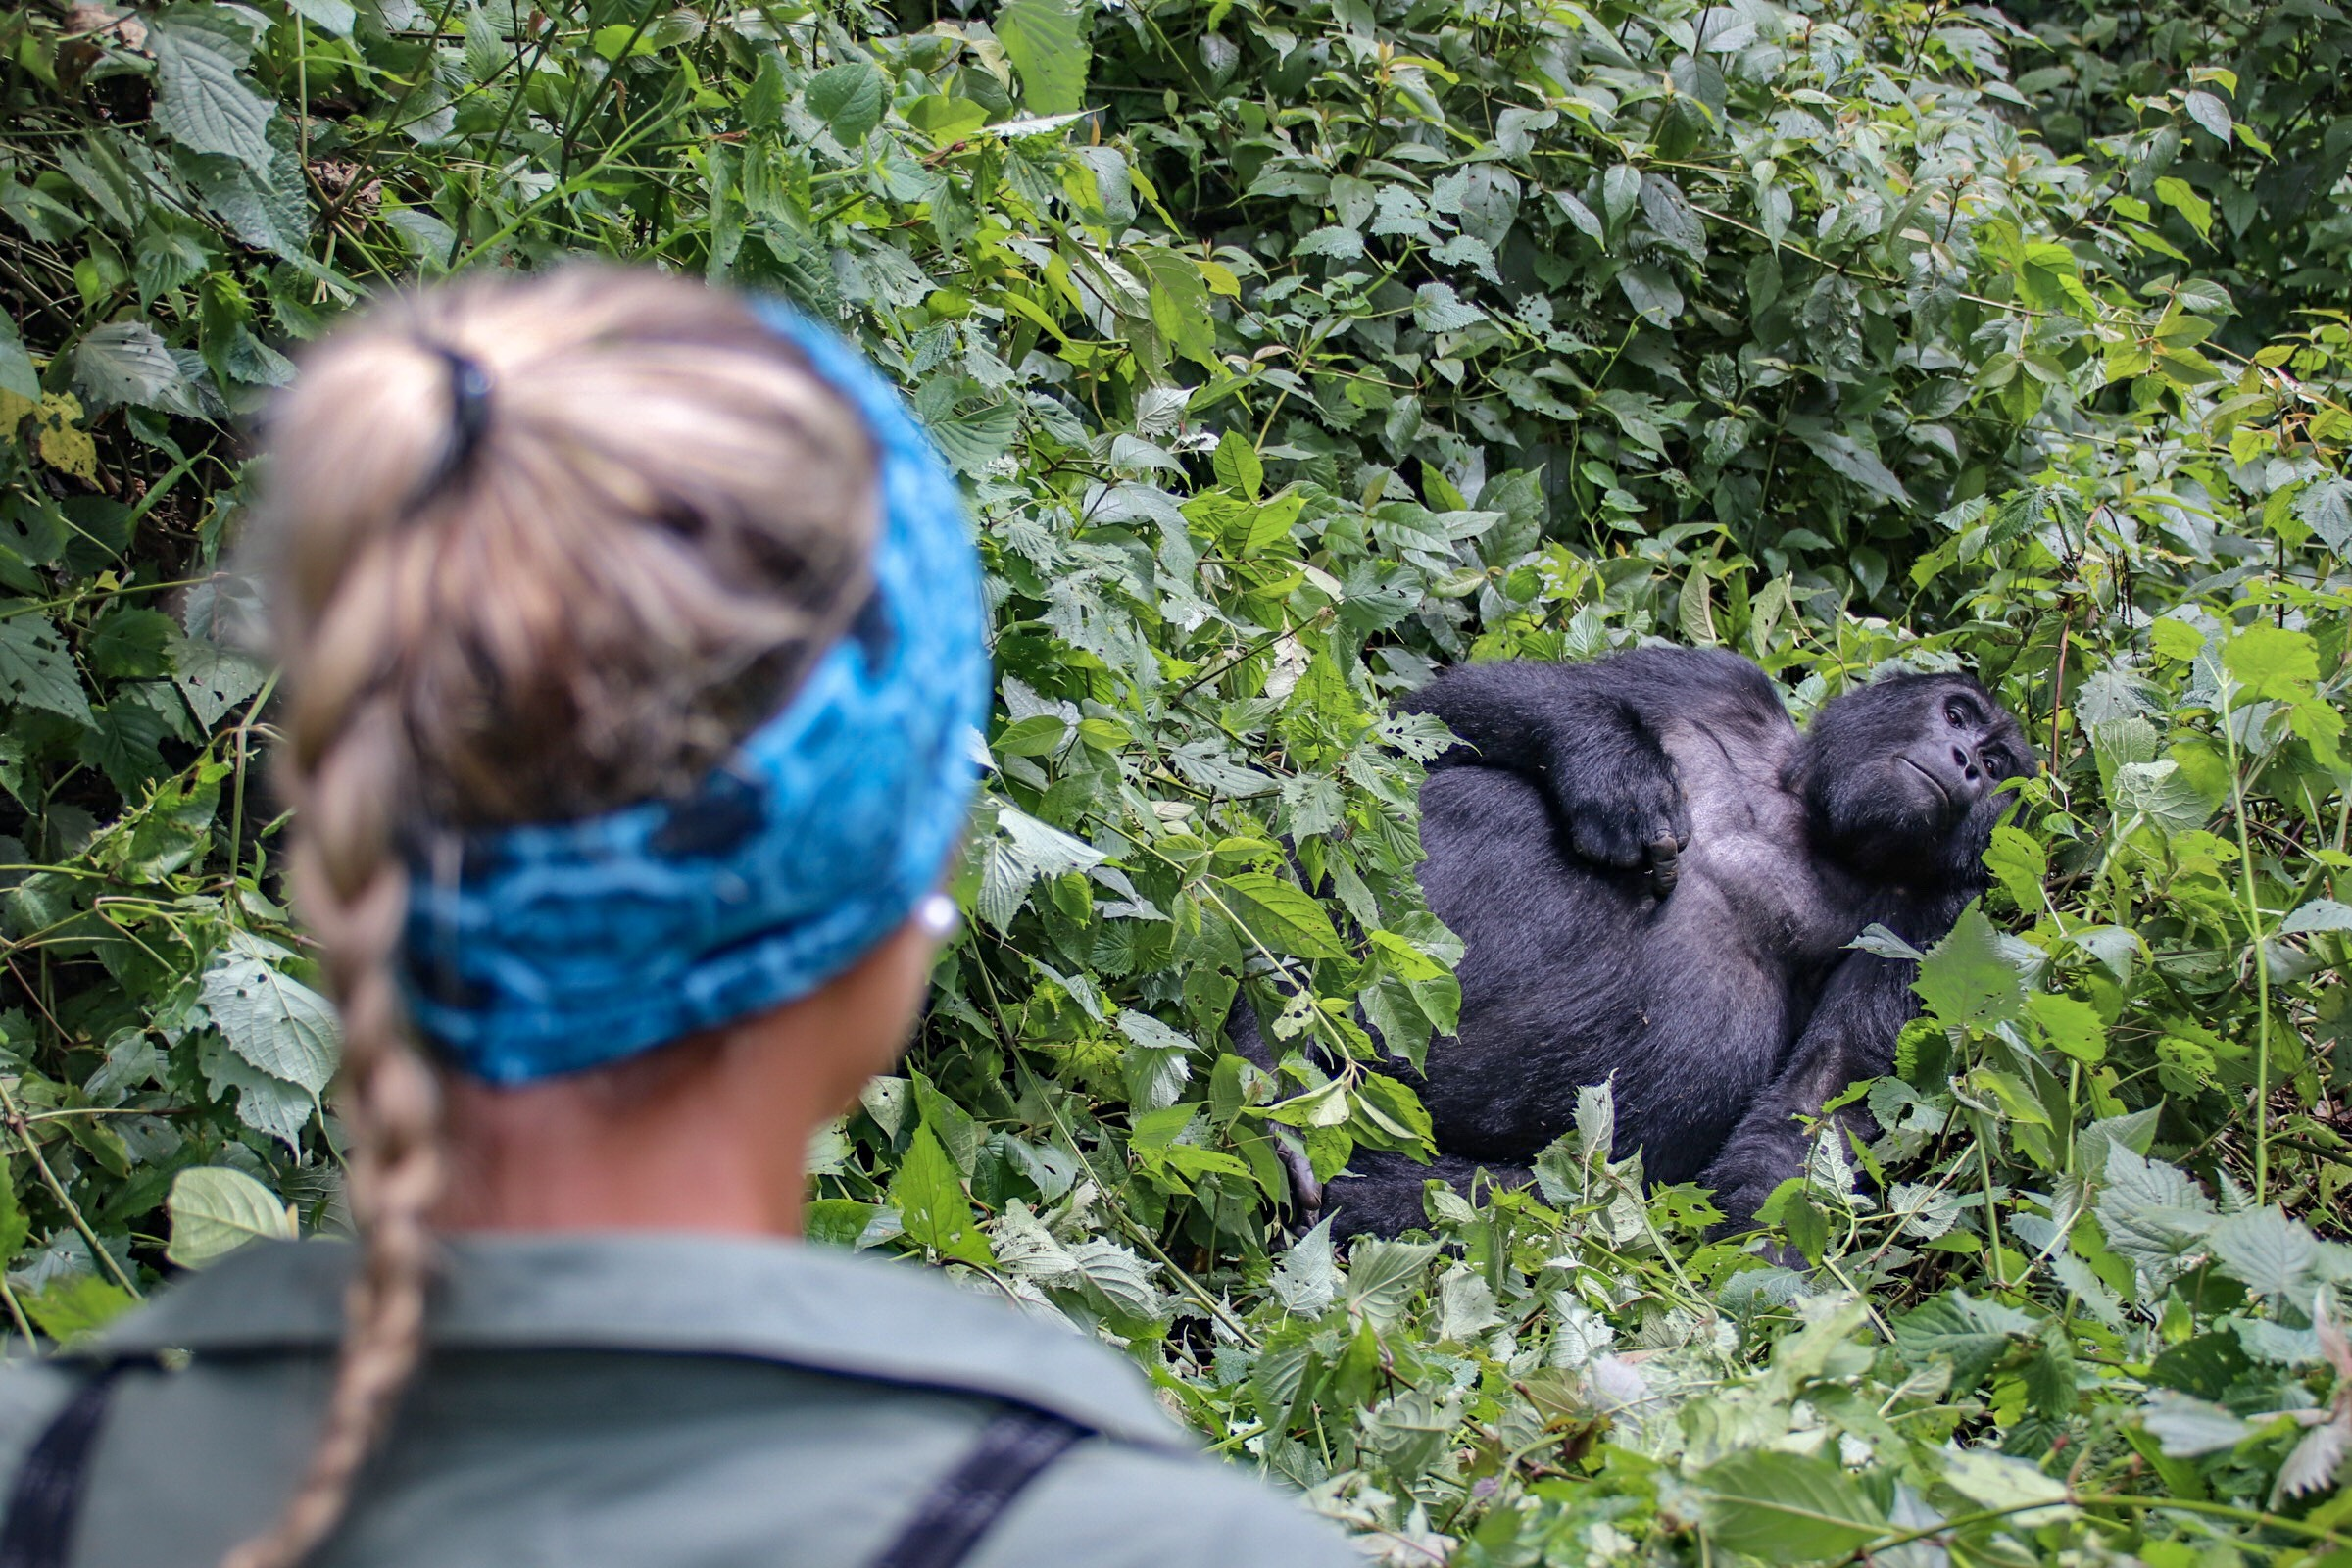 4-Day Pearl of Africa Trip Including Gorilla Trekking Tour 4